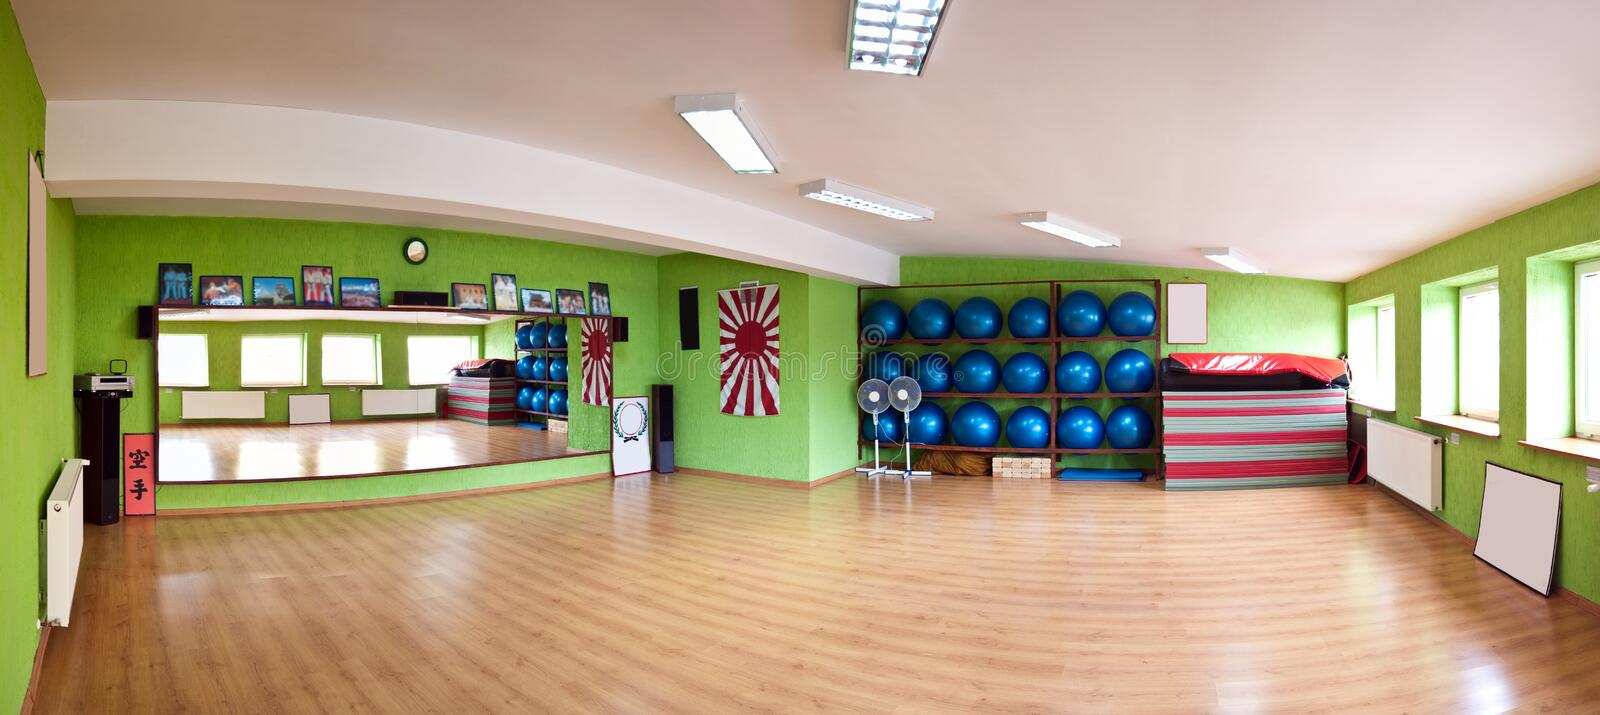 Download Gym panorama stock image. Image of sport, pilates, fitness - 24743081